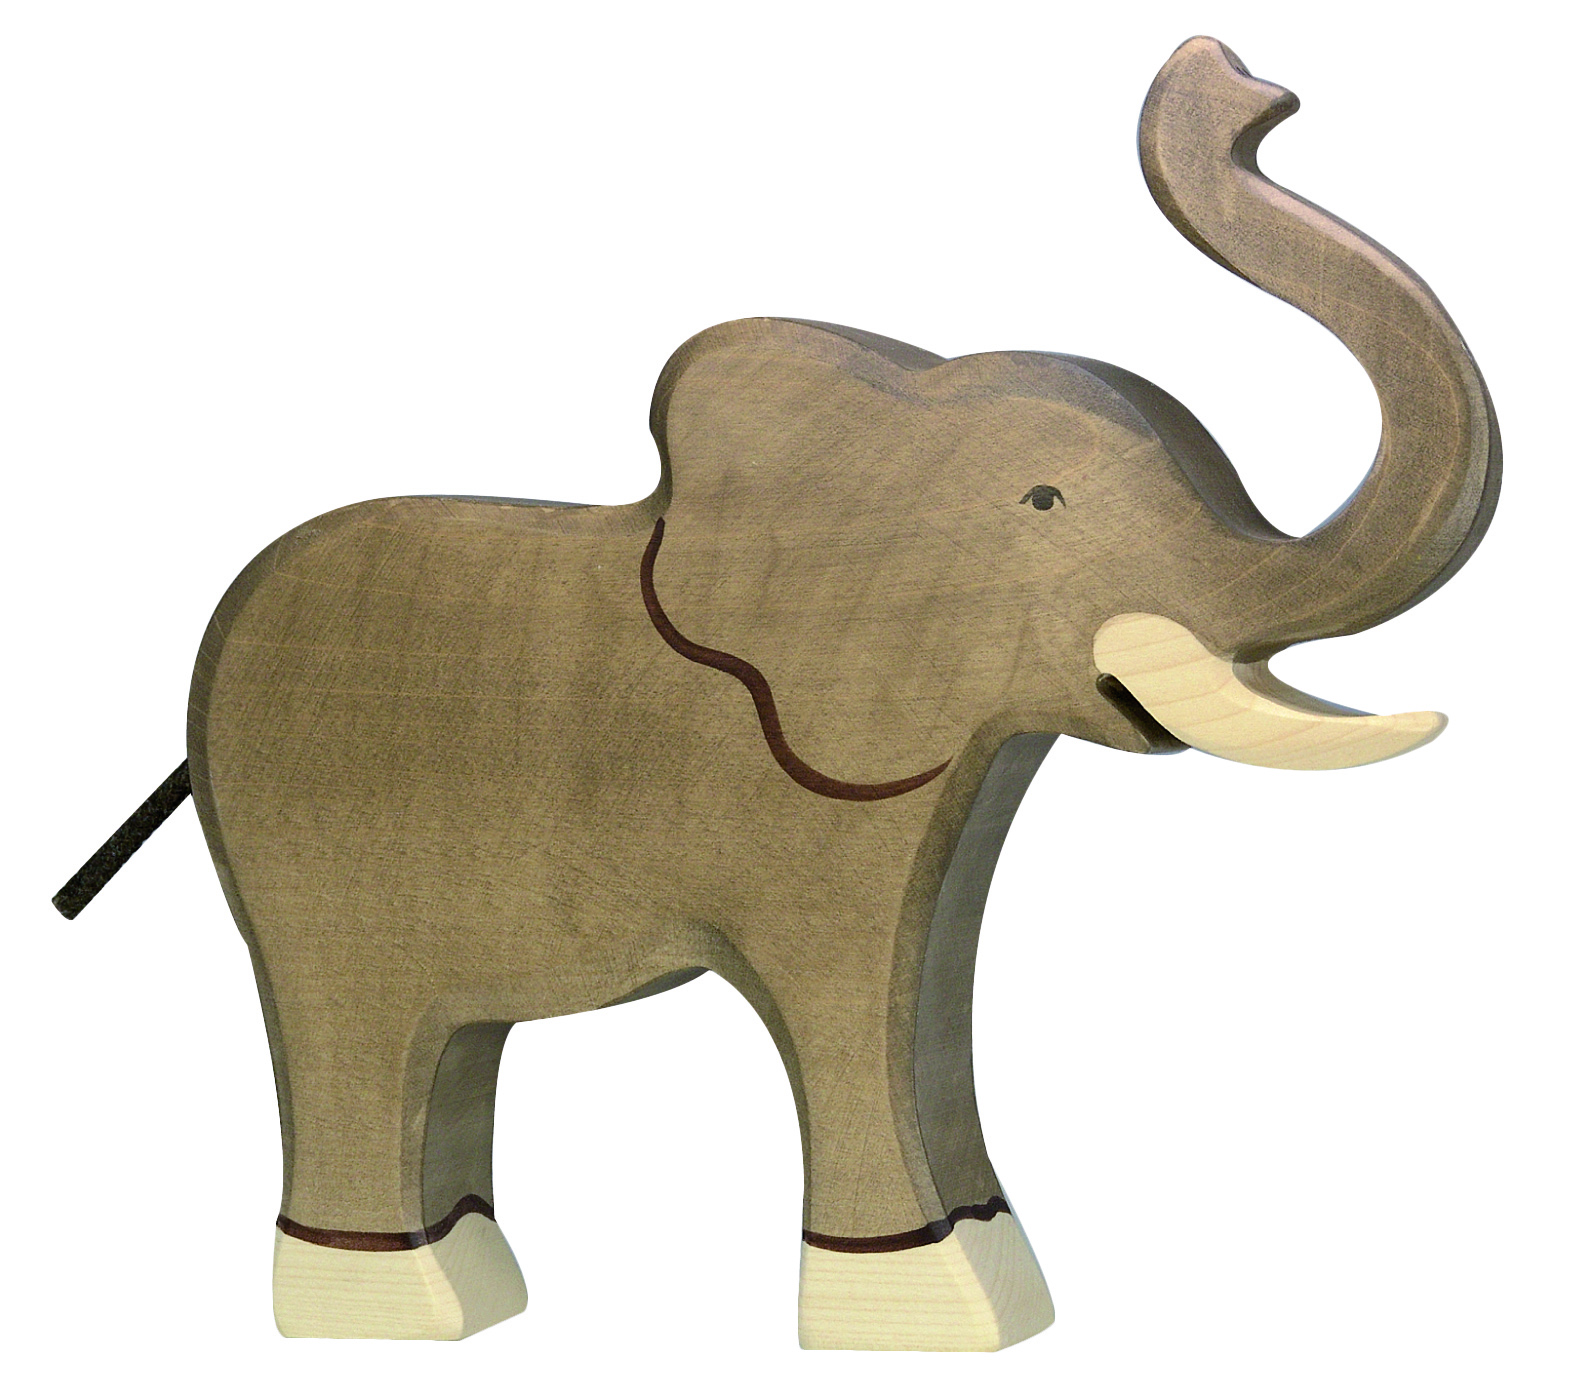 Holztiger Elephant with Trunk Raised Image